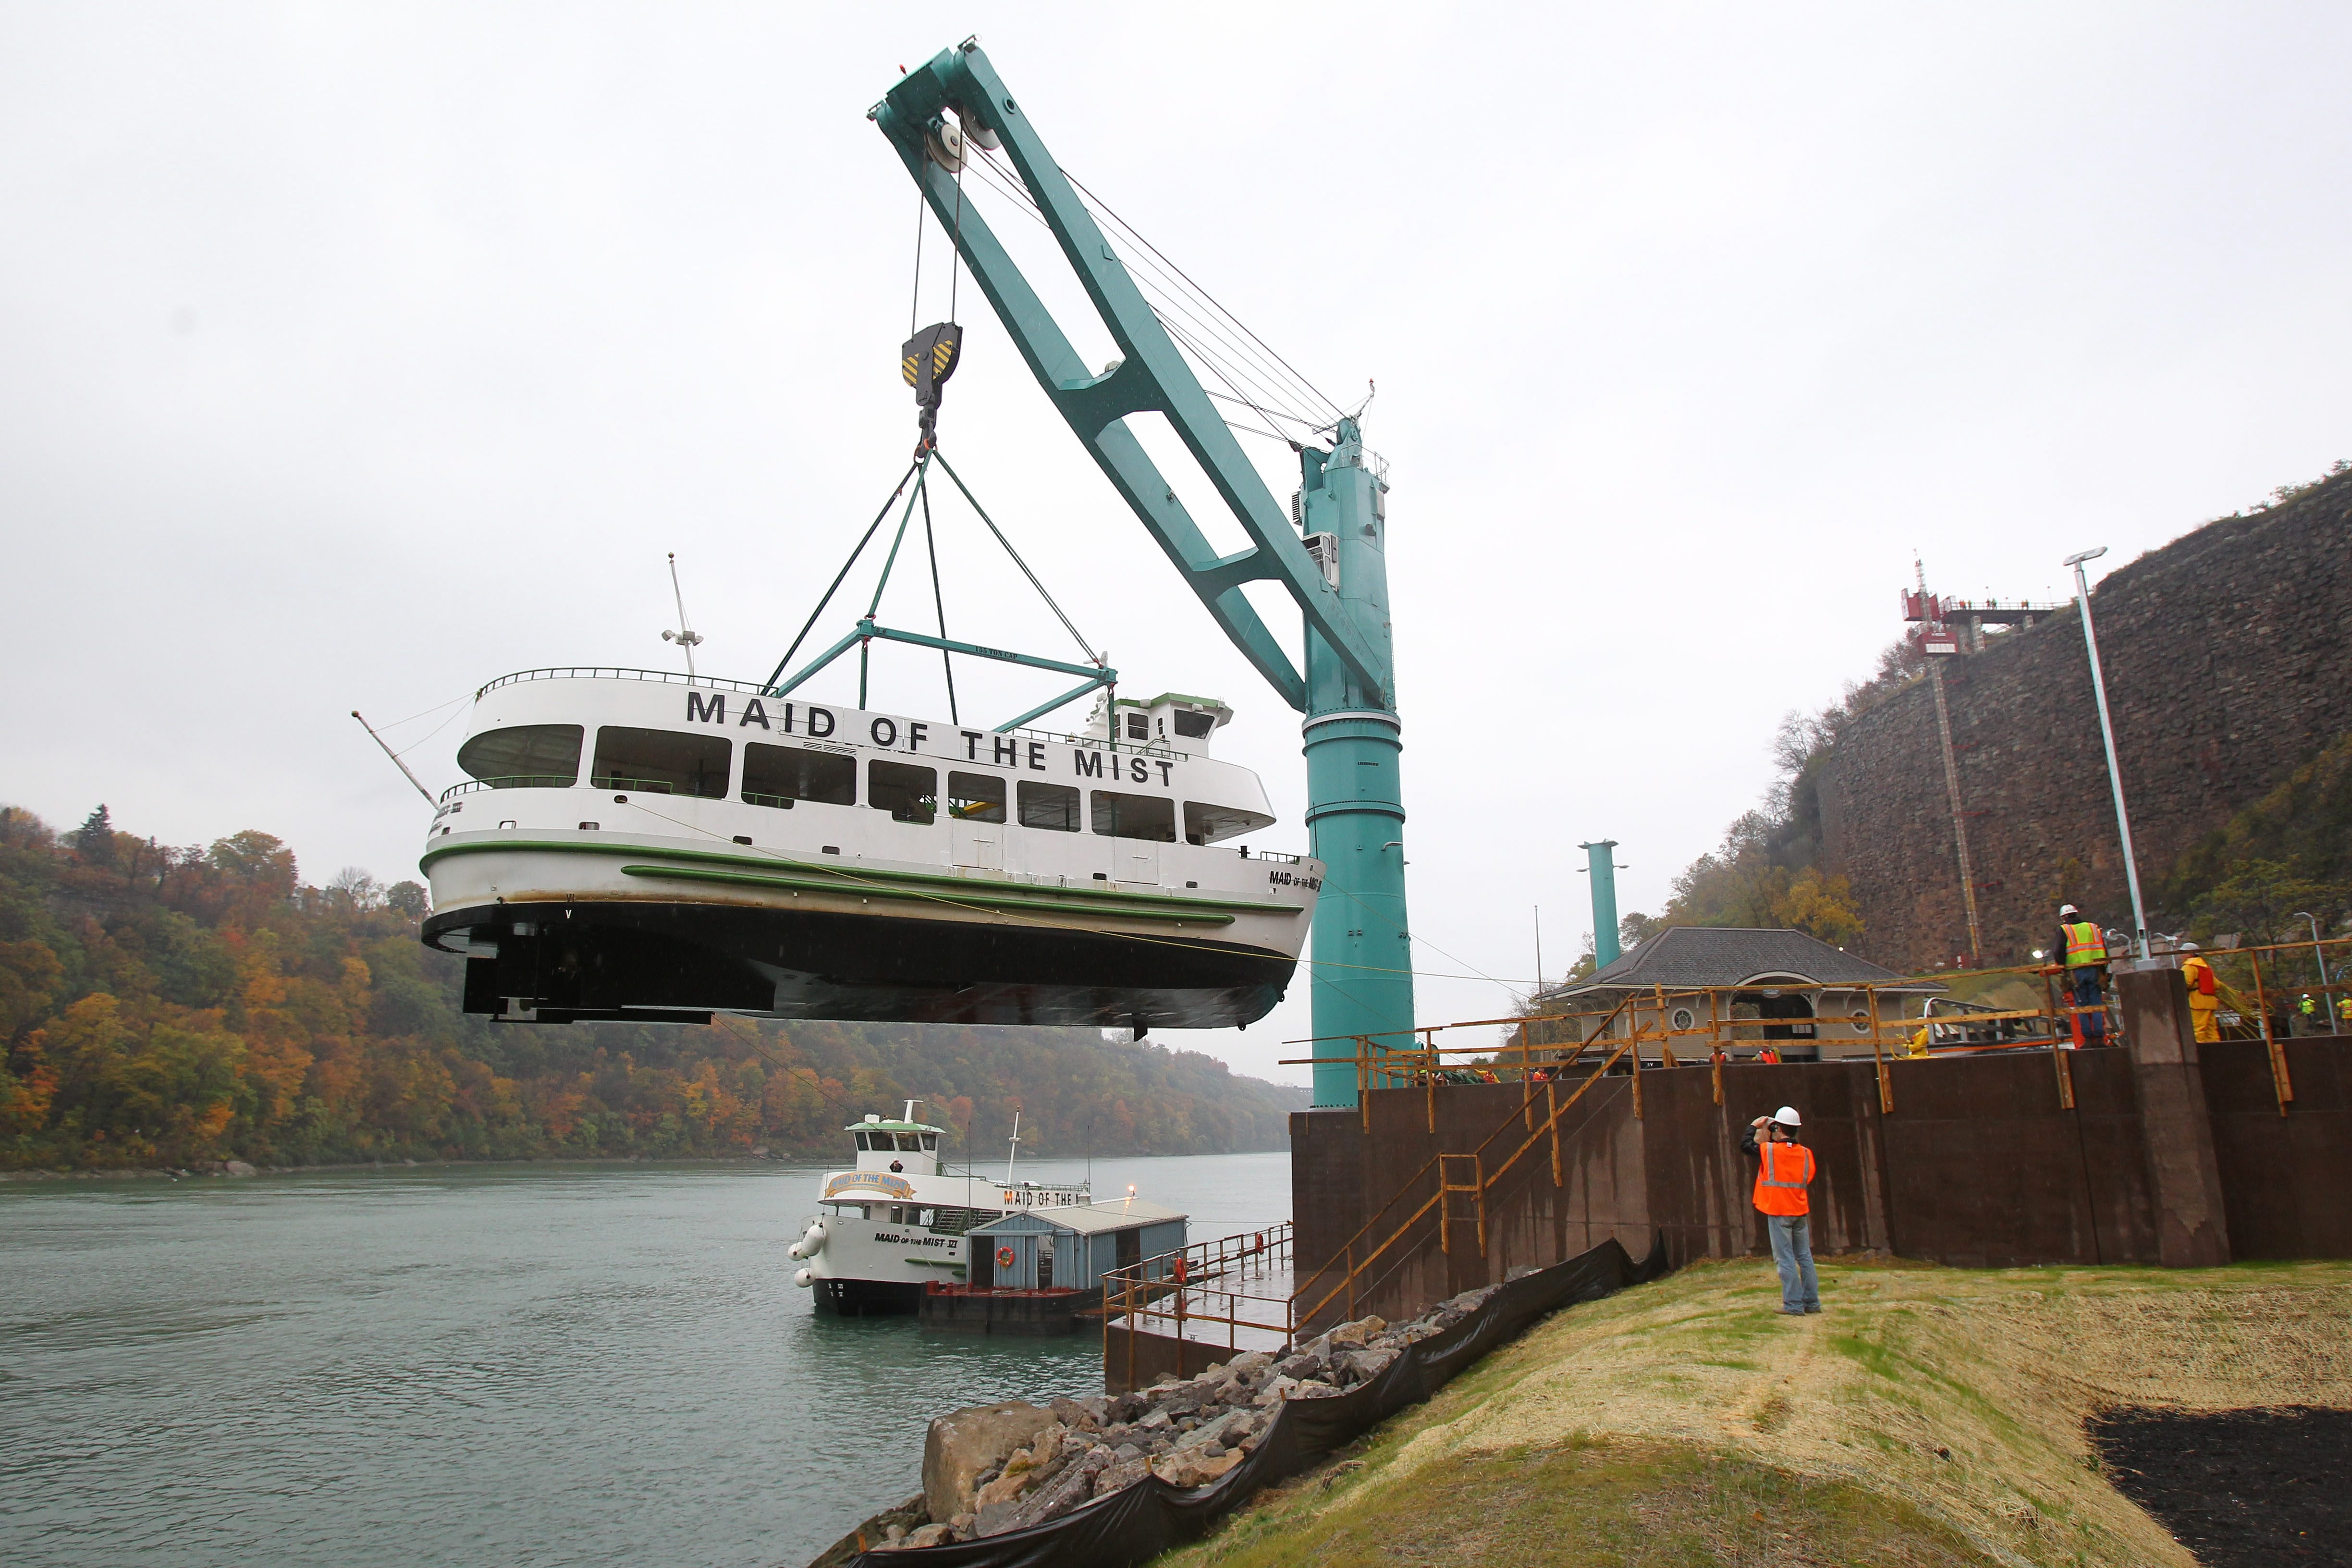 The electric-powered, 96-foot-high Liebherr Crane lifts the Maid of the Mist from the Niagara River and prepares to place it in its new dry dock at the former Schoellkopf Power Station site in Niagara Falls on Thursday.